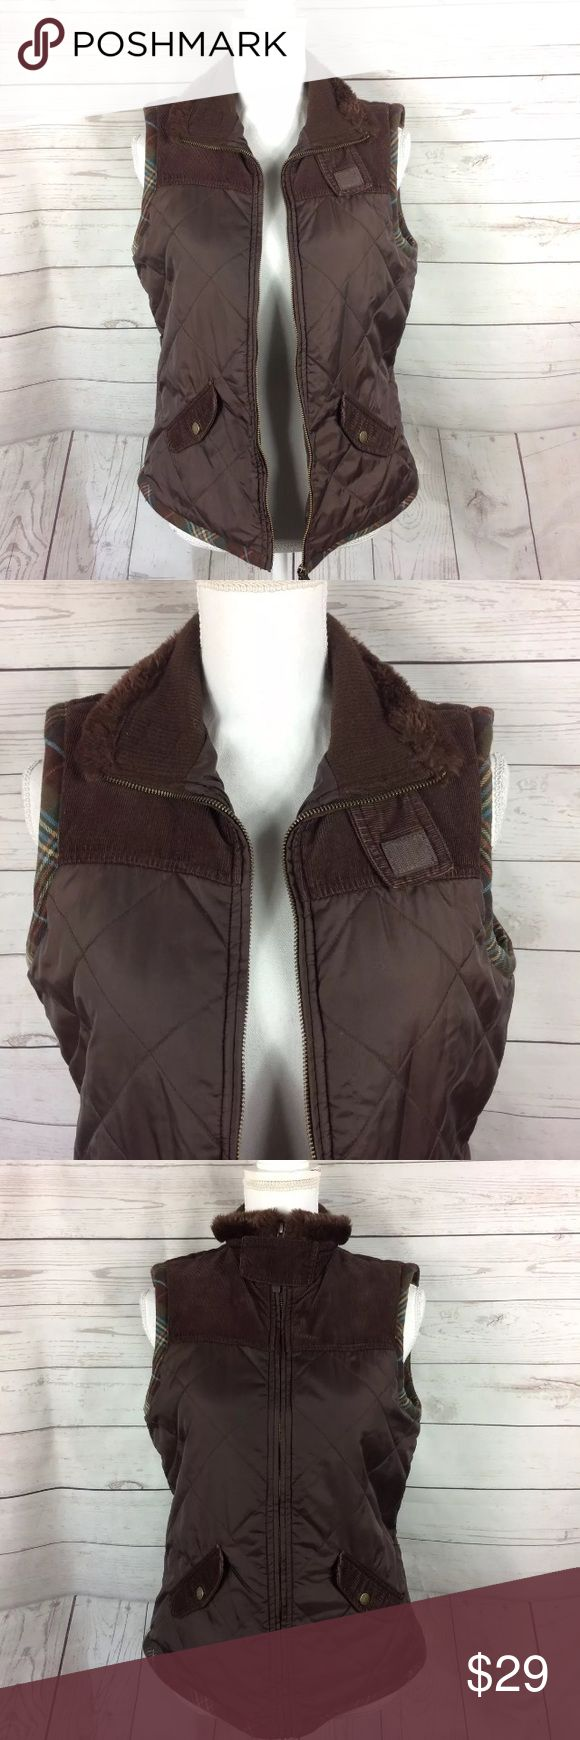 "CAbi Quilted Brown Zip Up Vest Puffer Vest Check out my other items for more sizes and styles!  Measurements are laying flat Underarm to underarm 19"" Length 24"" from shoulder to hem CAbi Jackets & Coats Vests"